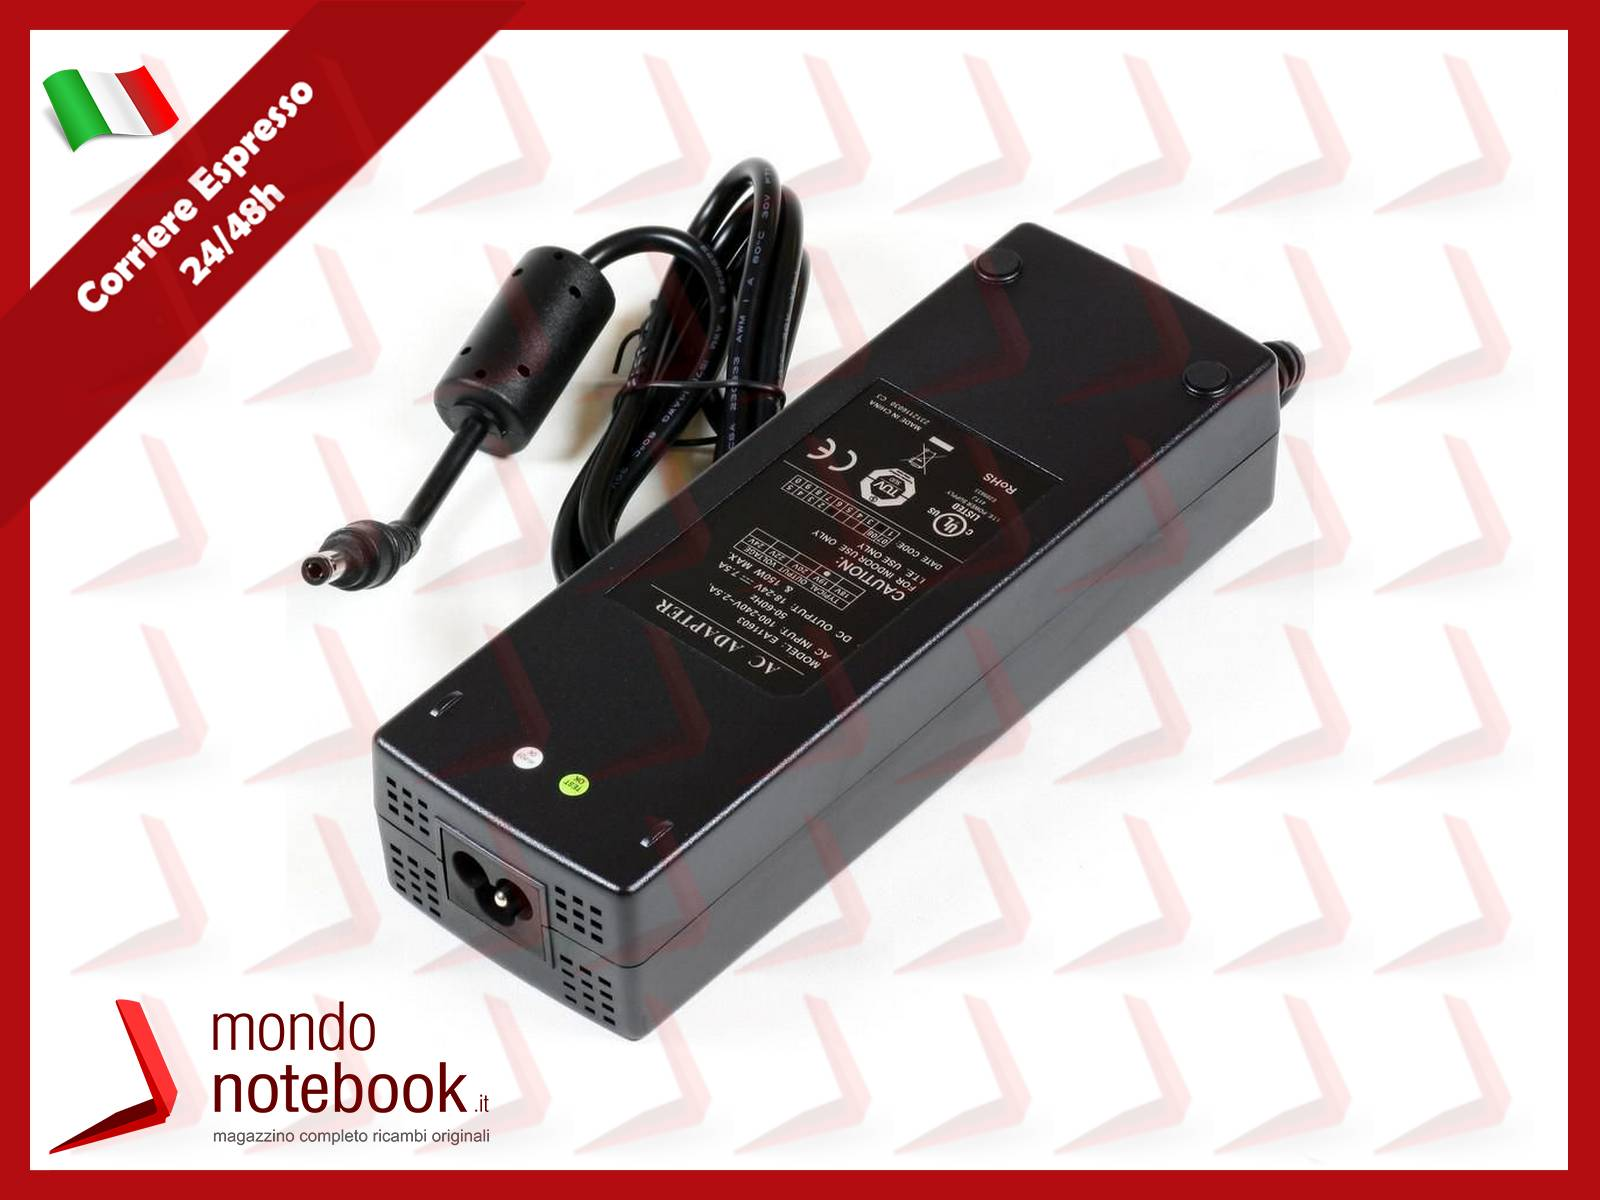 green-cell-car-charger-ac-adapter-per-laptop-asus-eee-pc-1001-1005-1015-1201-1215-19v-21a